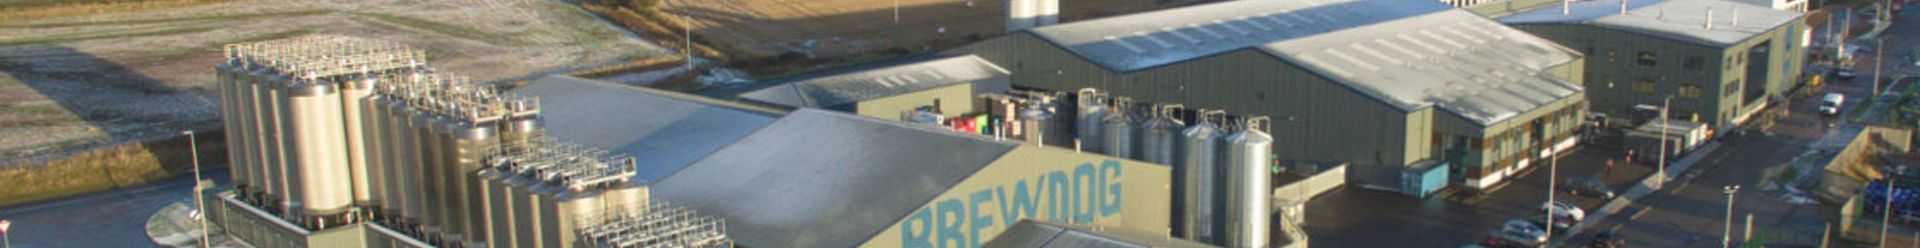 BrewDog Blog